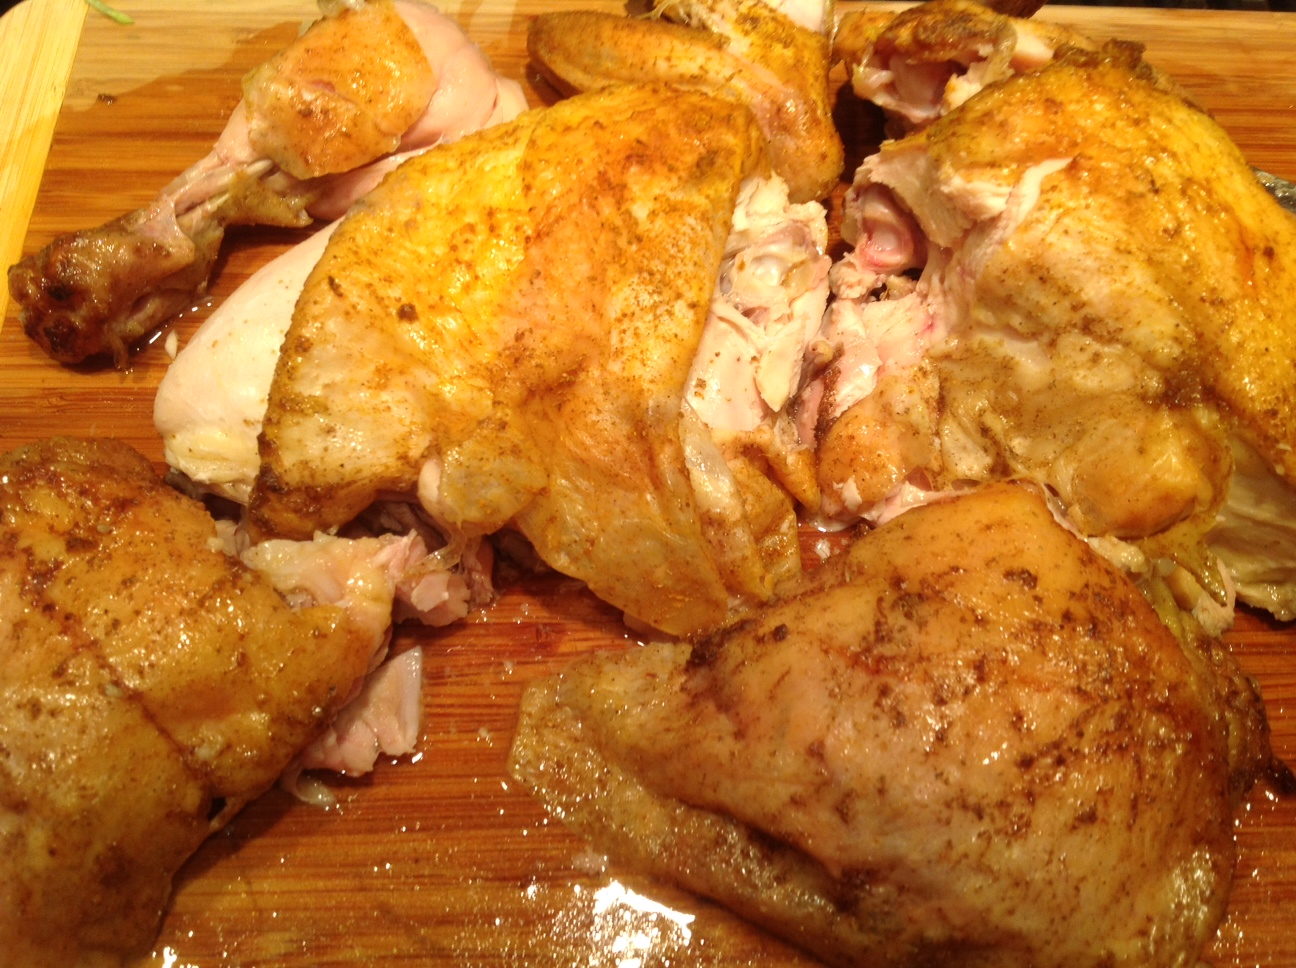 Roasted chicken with different spice rub